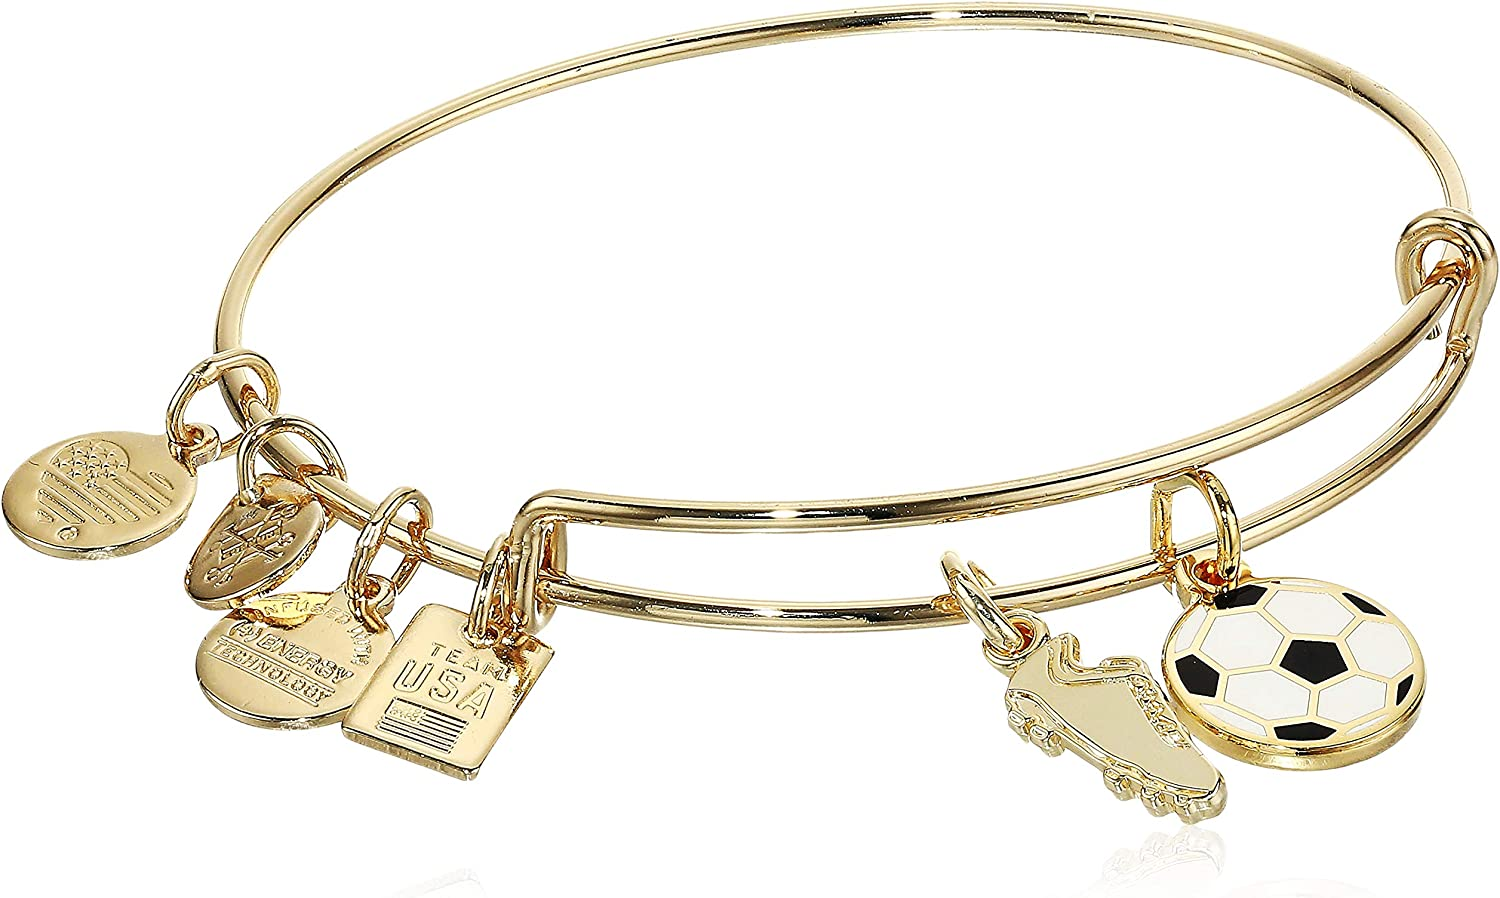 Alex and Ani Collaborations Expandable Bangle for Women, Team USA Soccer Duo Charms, Shiny Gold Finish, 2 to 3.5 in (AS20EBUS01SG)